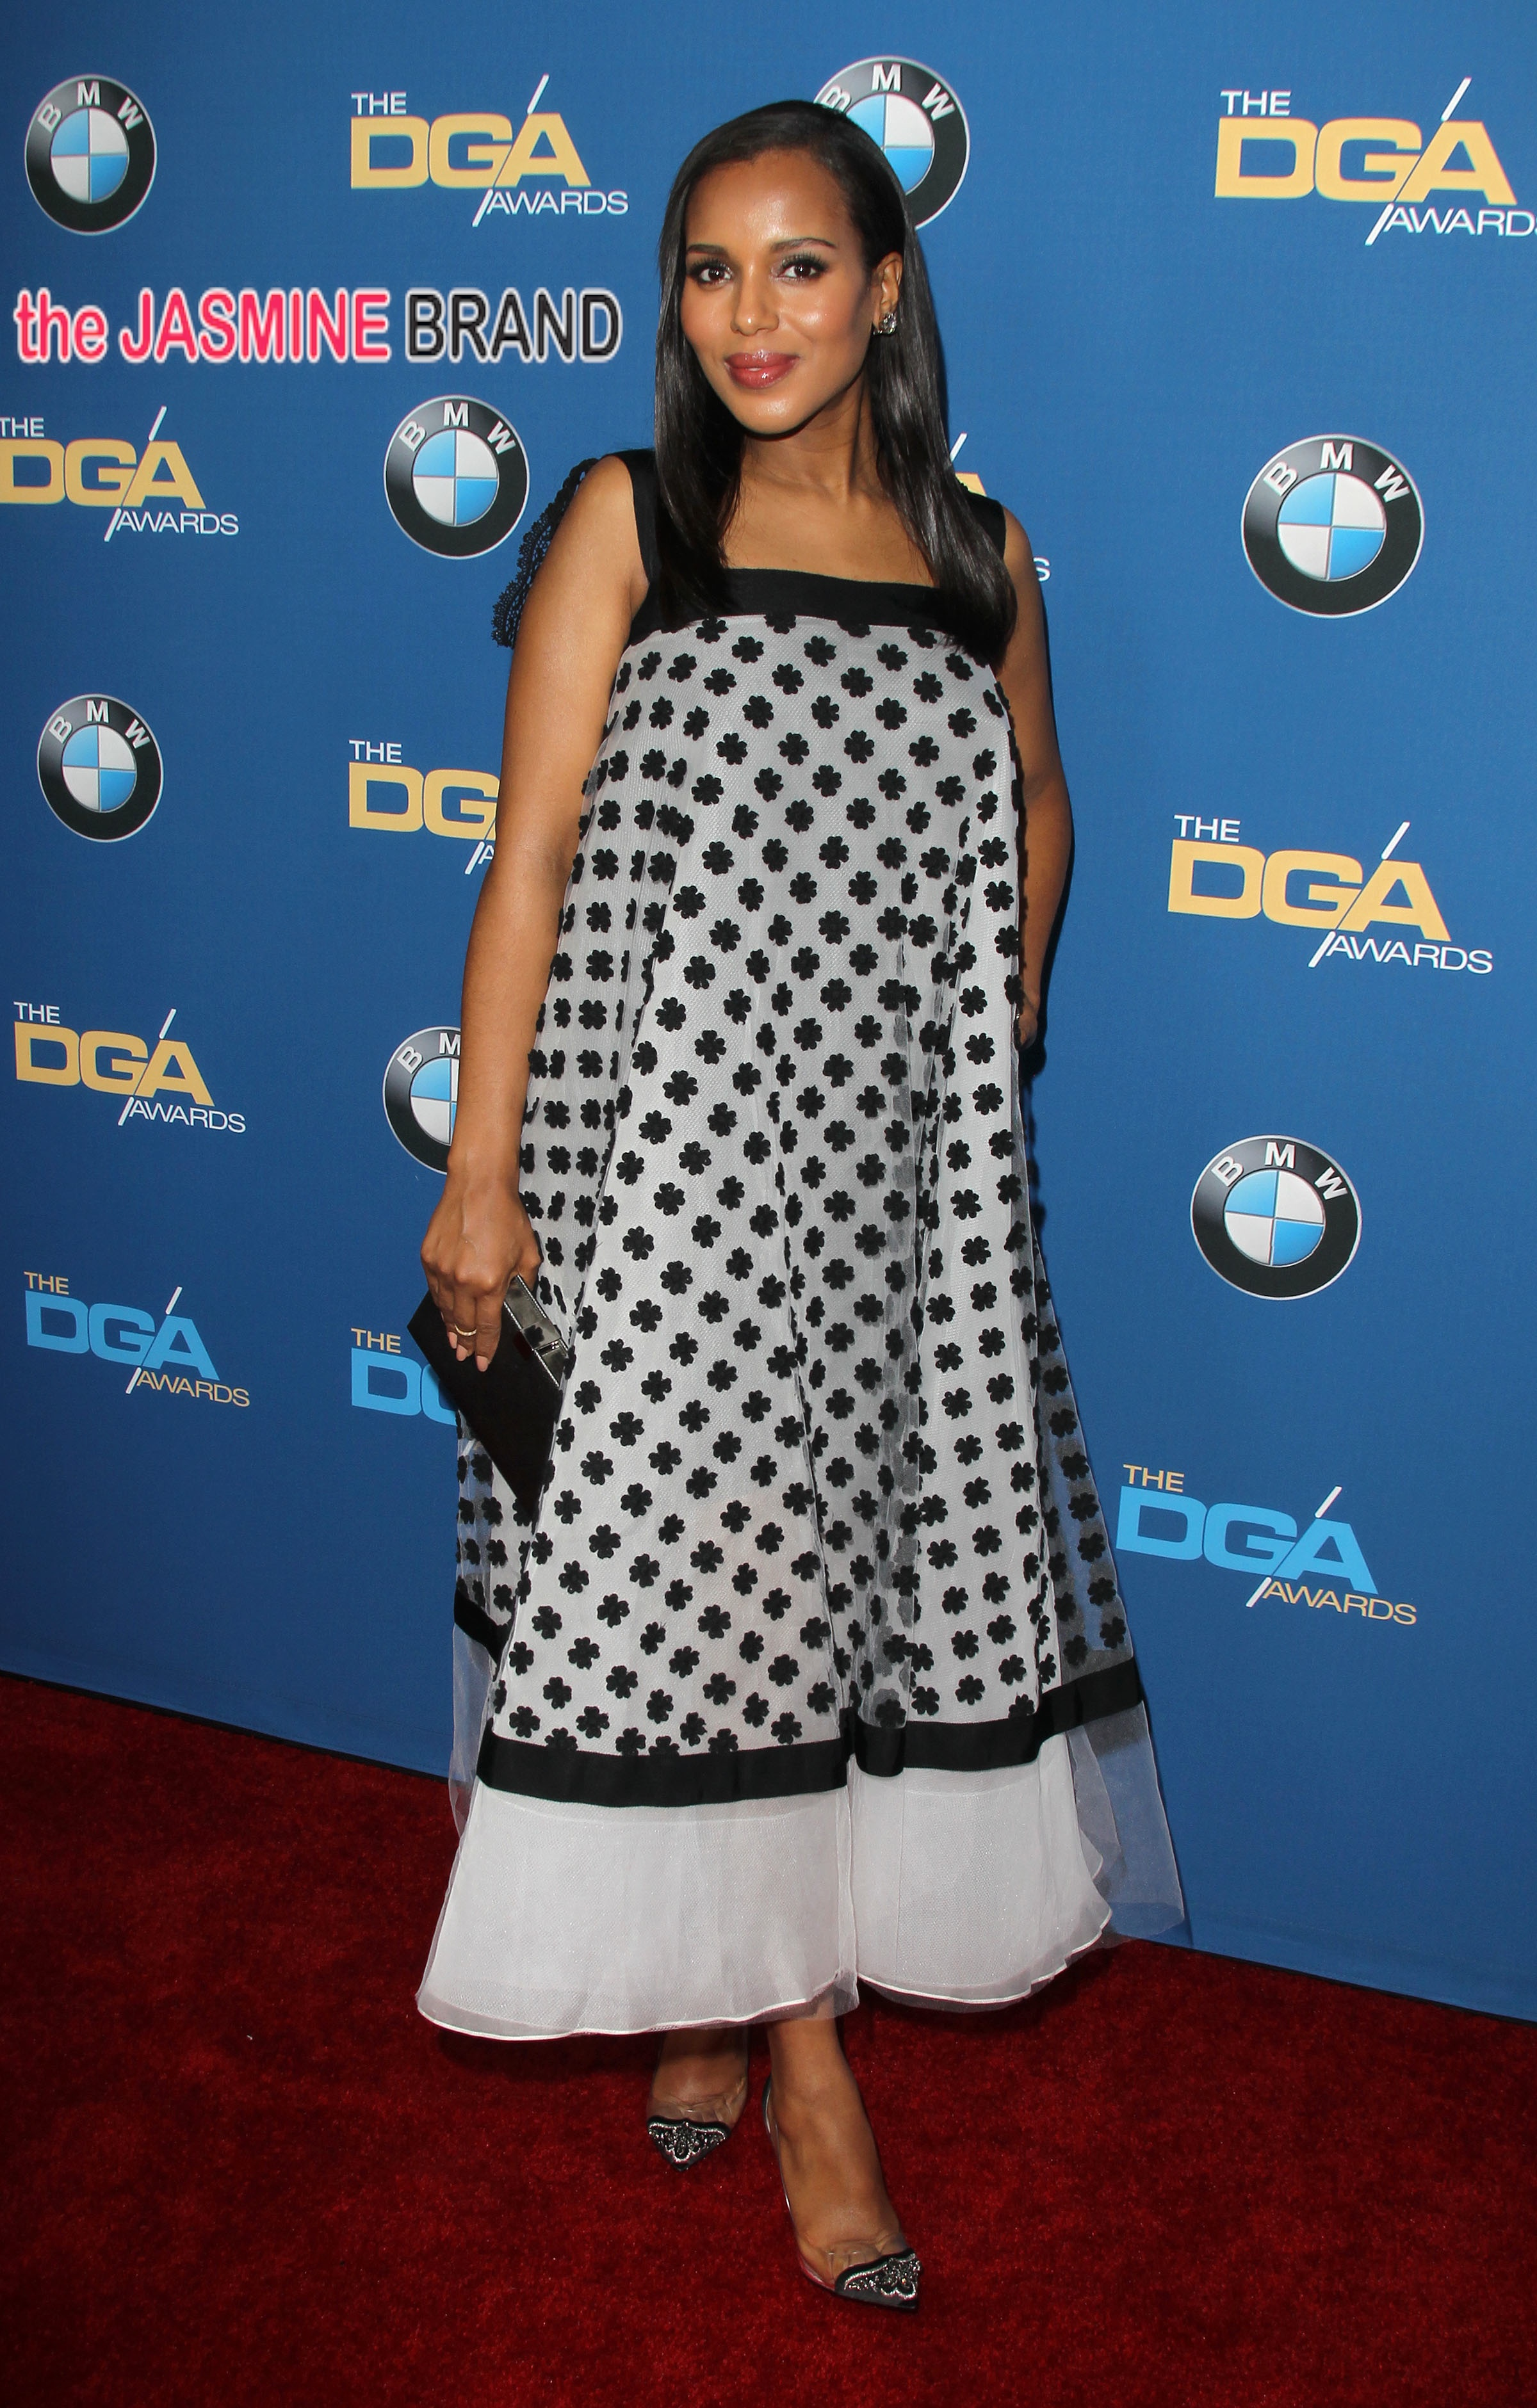 66th Annual DGA Awards in Century City